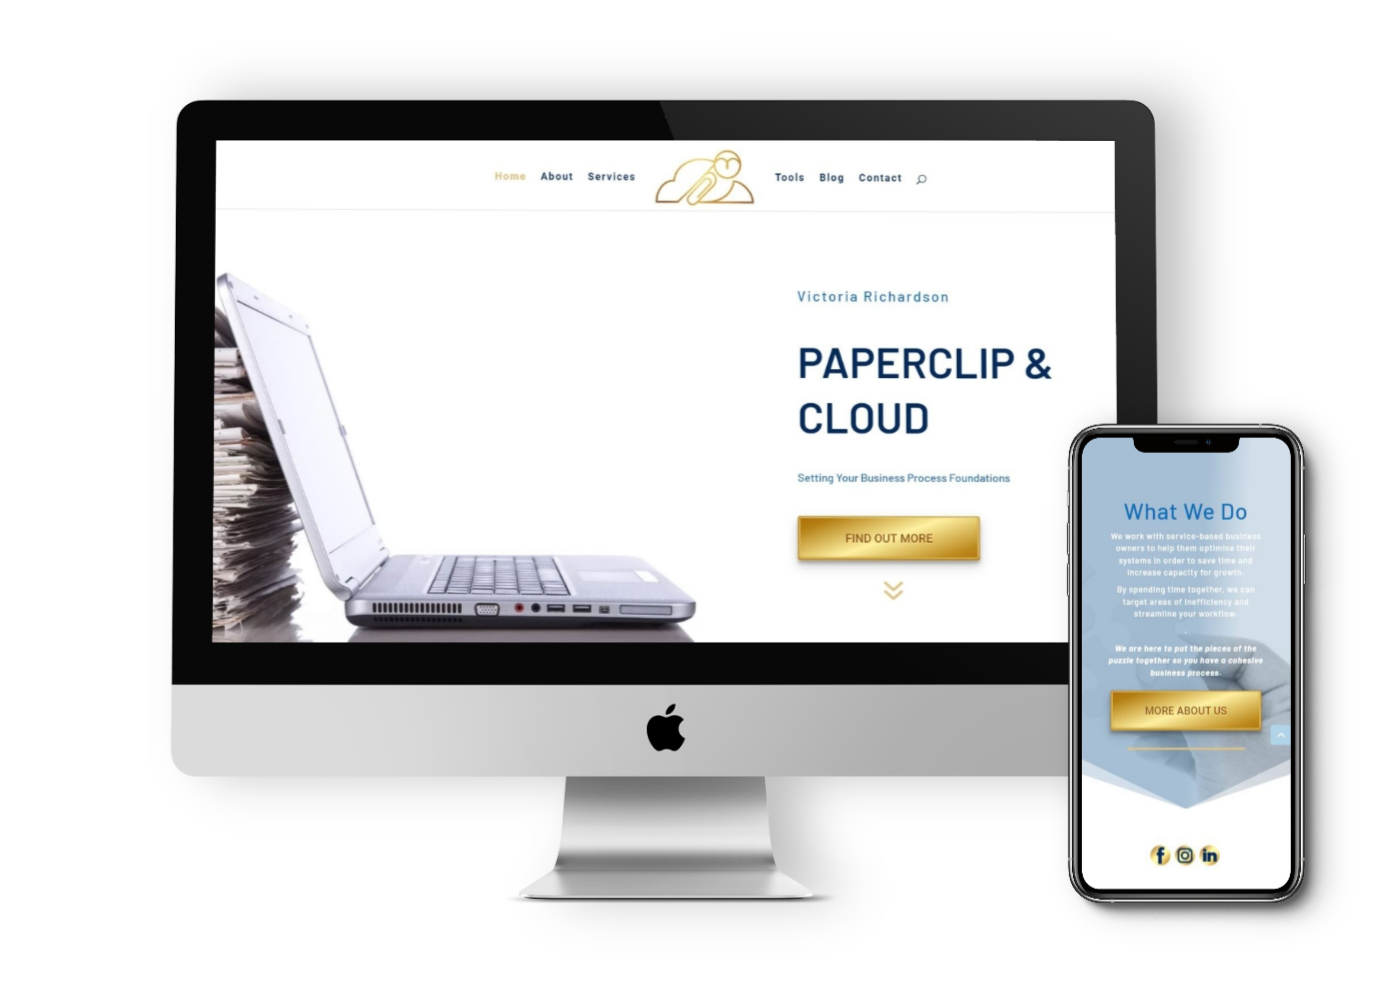 Mockup of website design for Paperclip and Cloud, showing mobile and desktop views